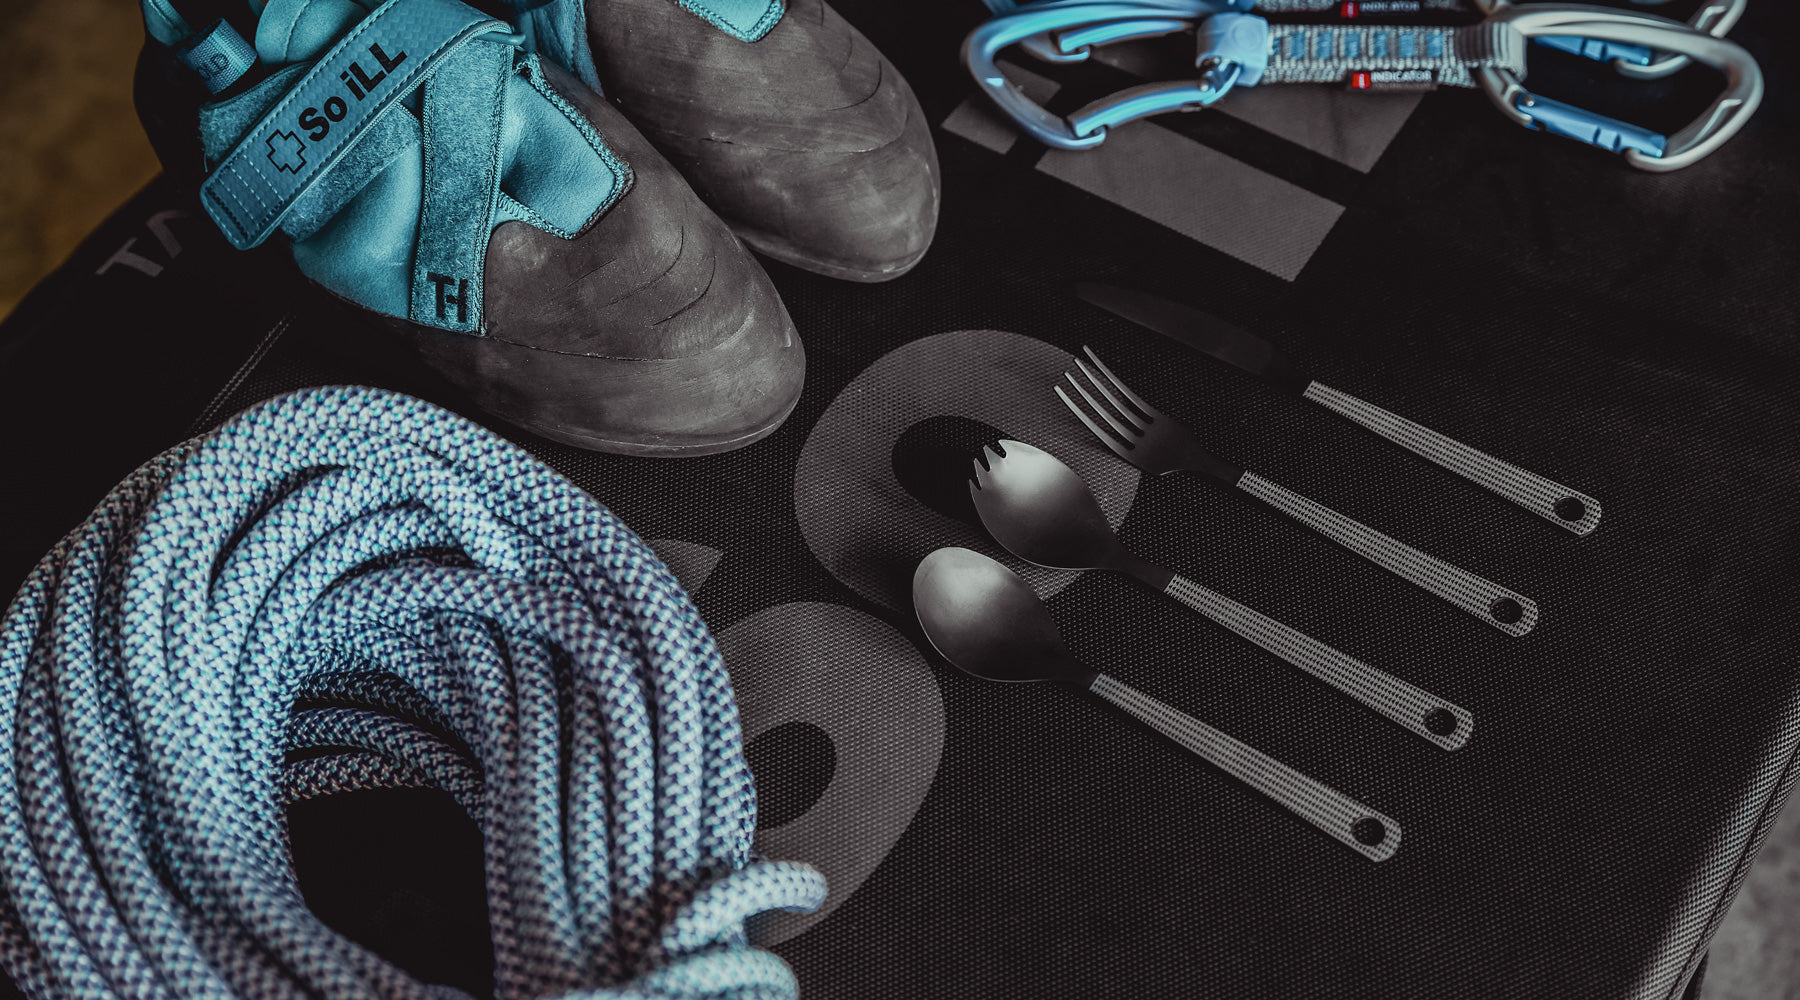 So iLL x On The Roam cutlery shown on a crash pad Distribution brush 2.0 is shown on a climbing mat with climbing chalk